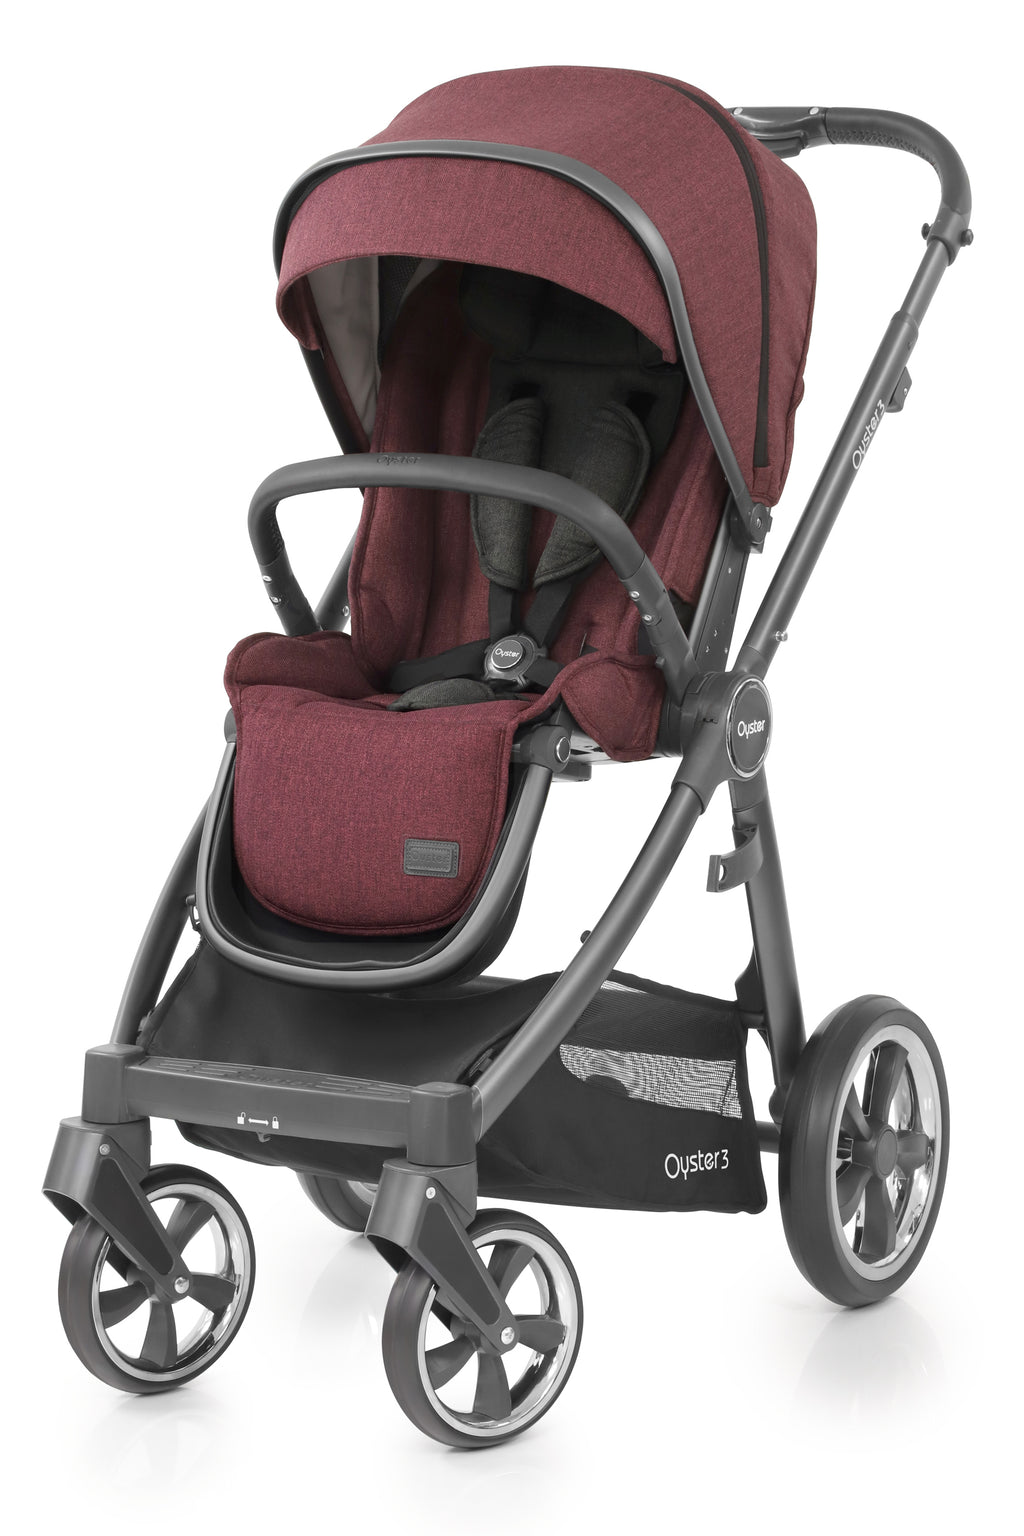 Babystyle Oyster 3 Pram Berry - City Grey Chassis